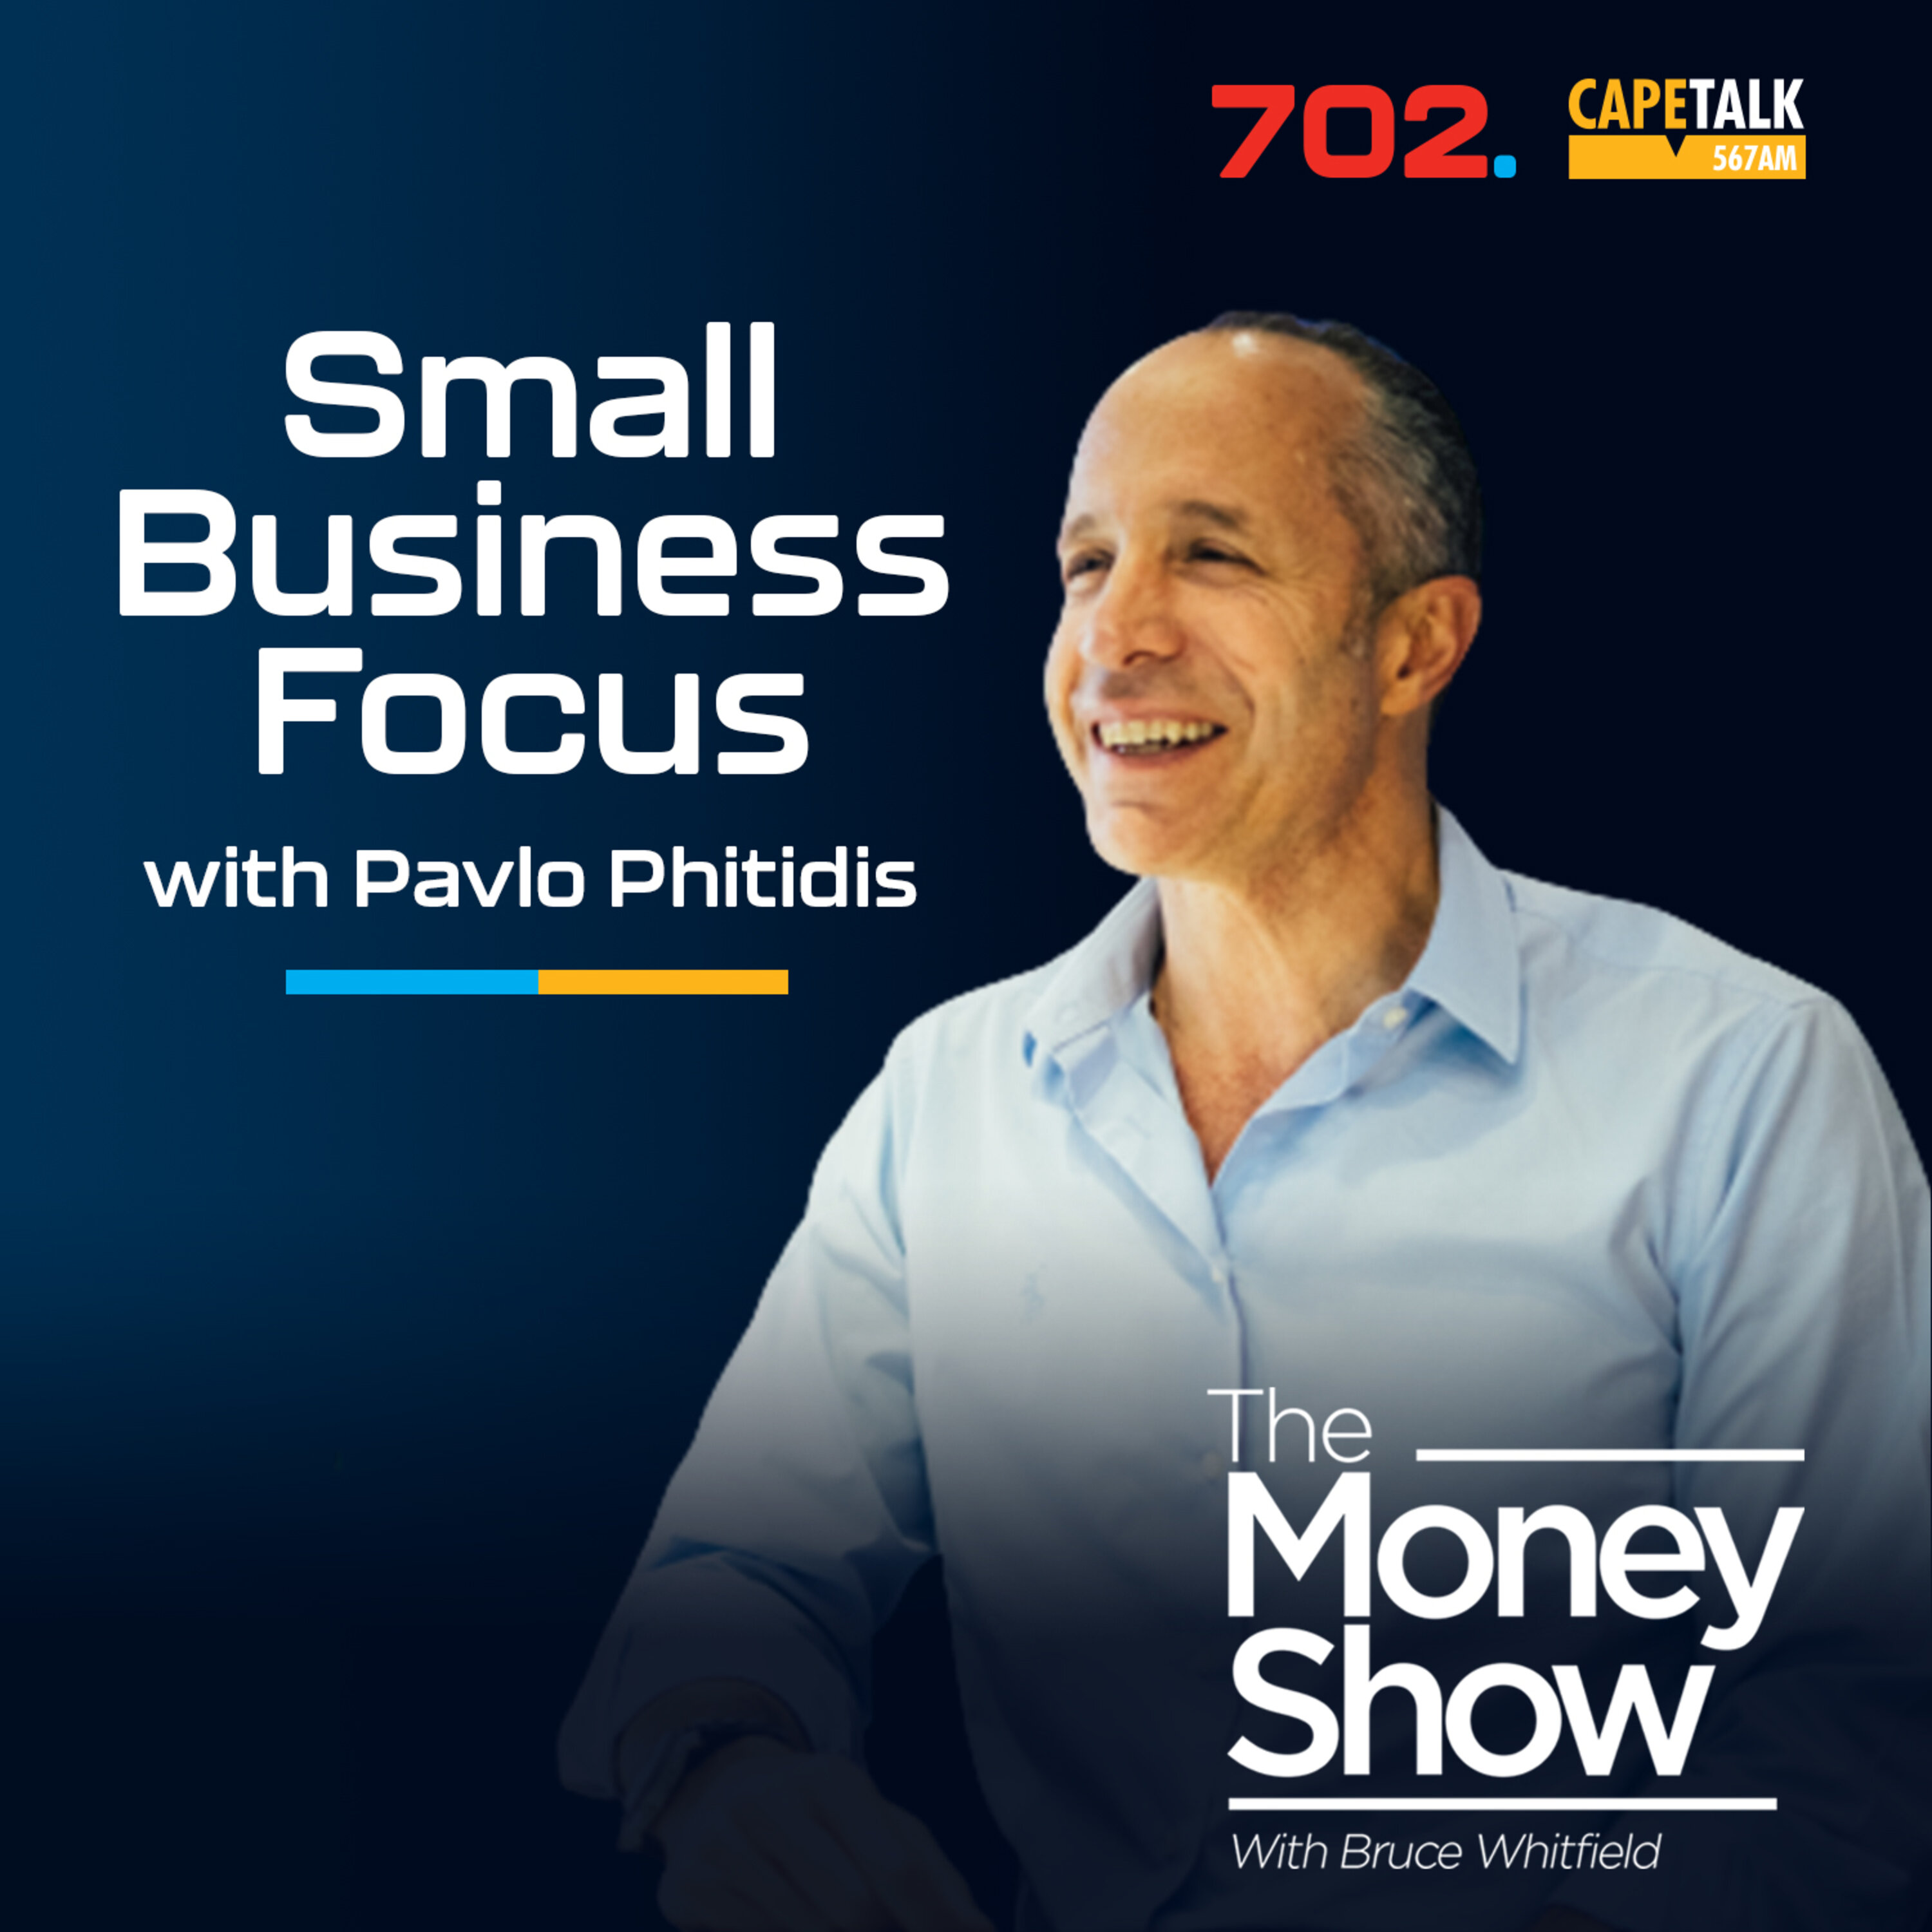 Small Business Focus by Primedia Broadcasting on Apple Podcasts